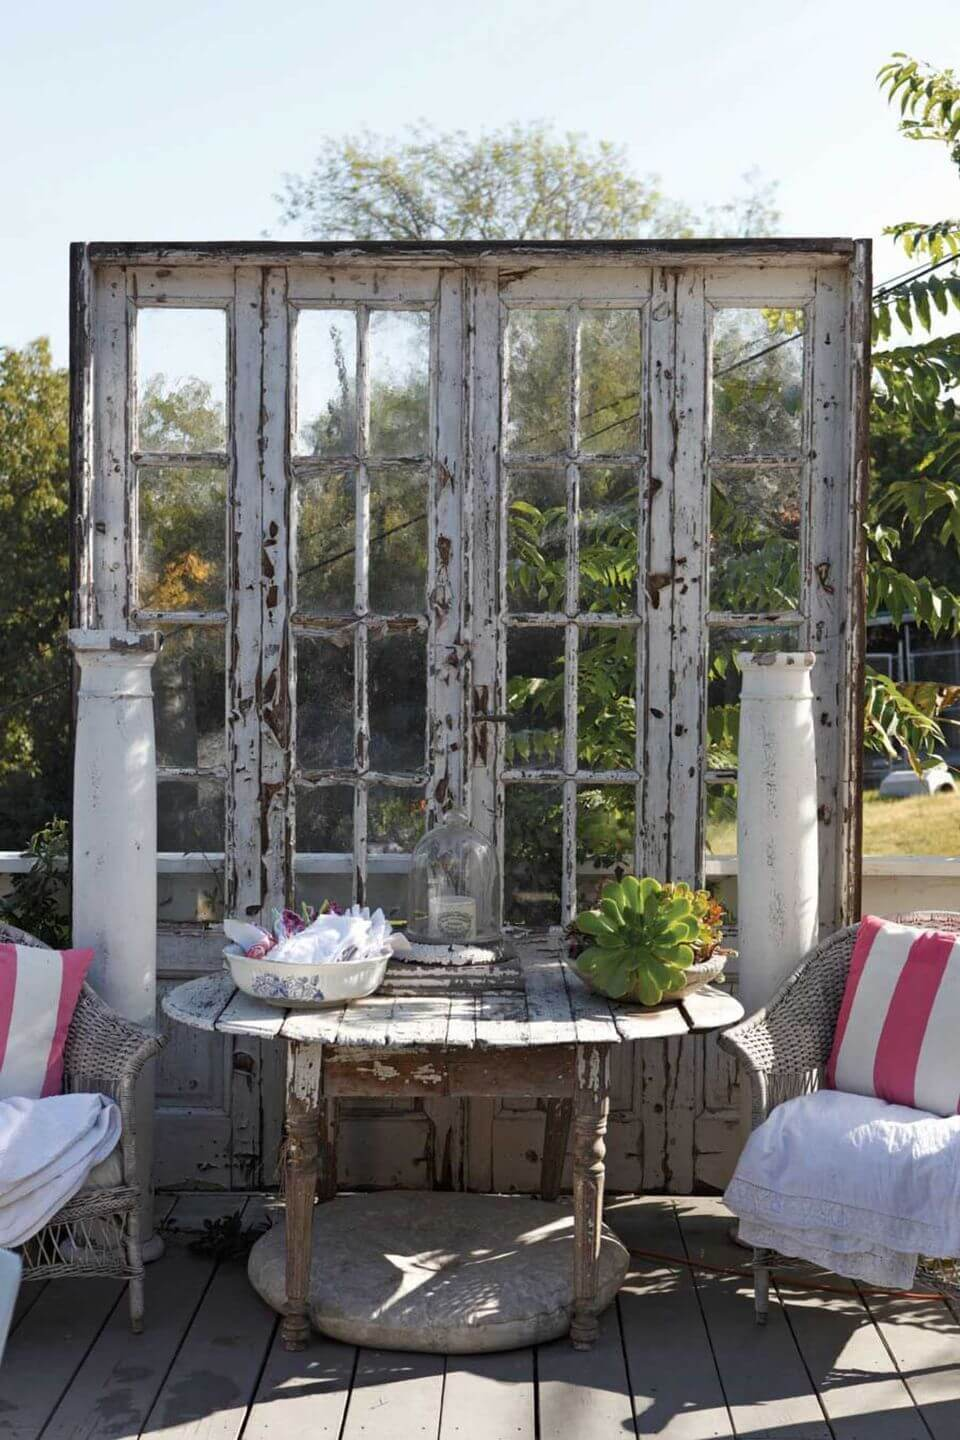 Best Vintage Porch Decor Ideas #11